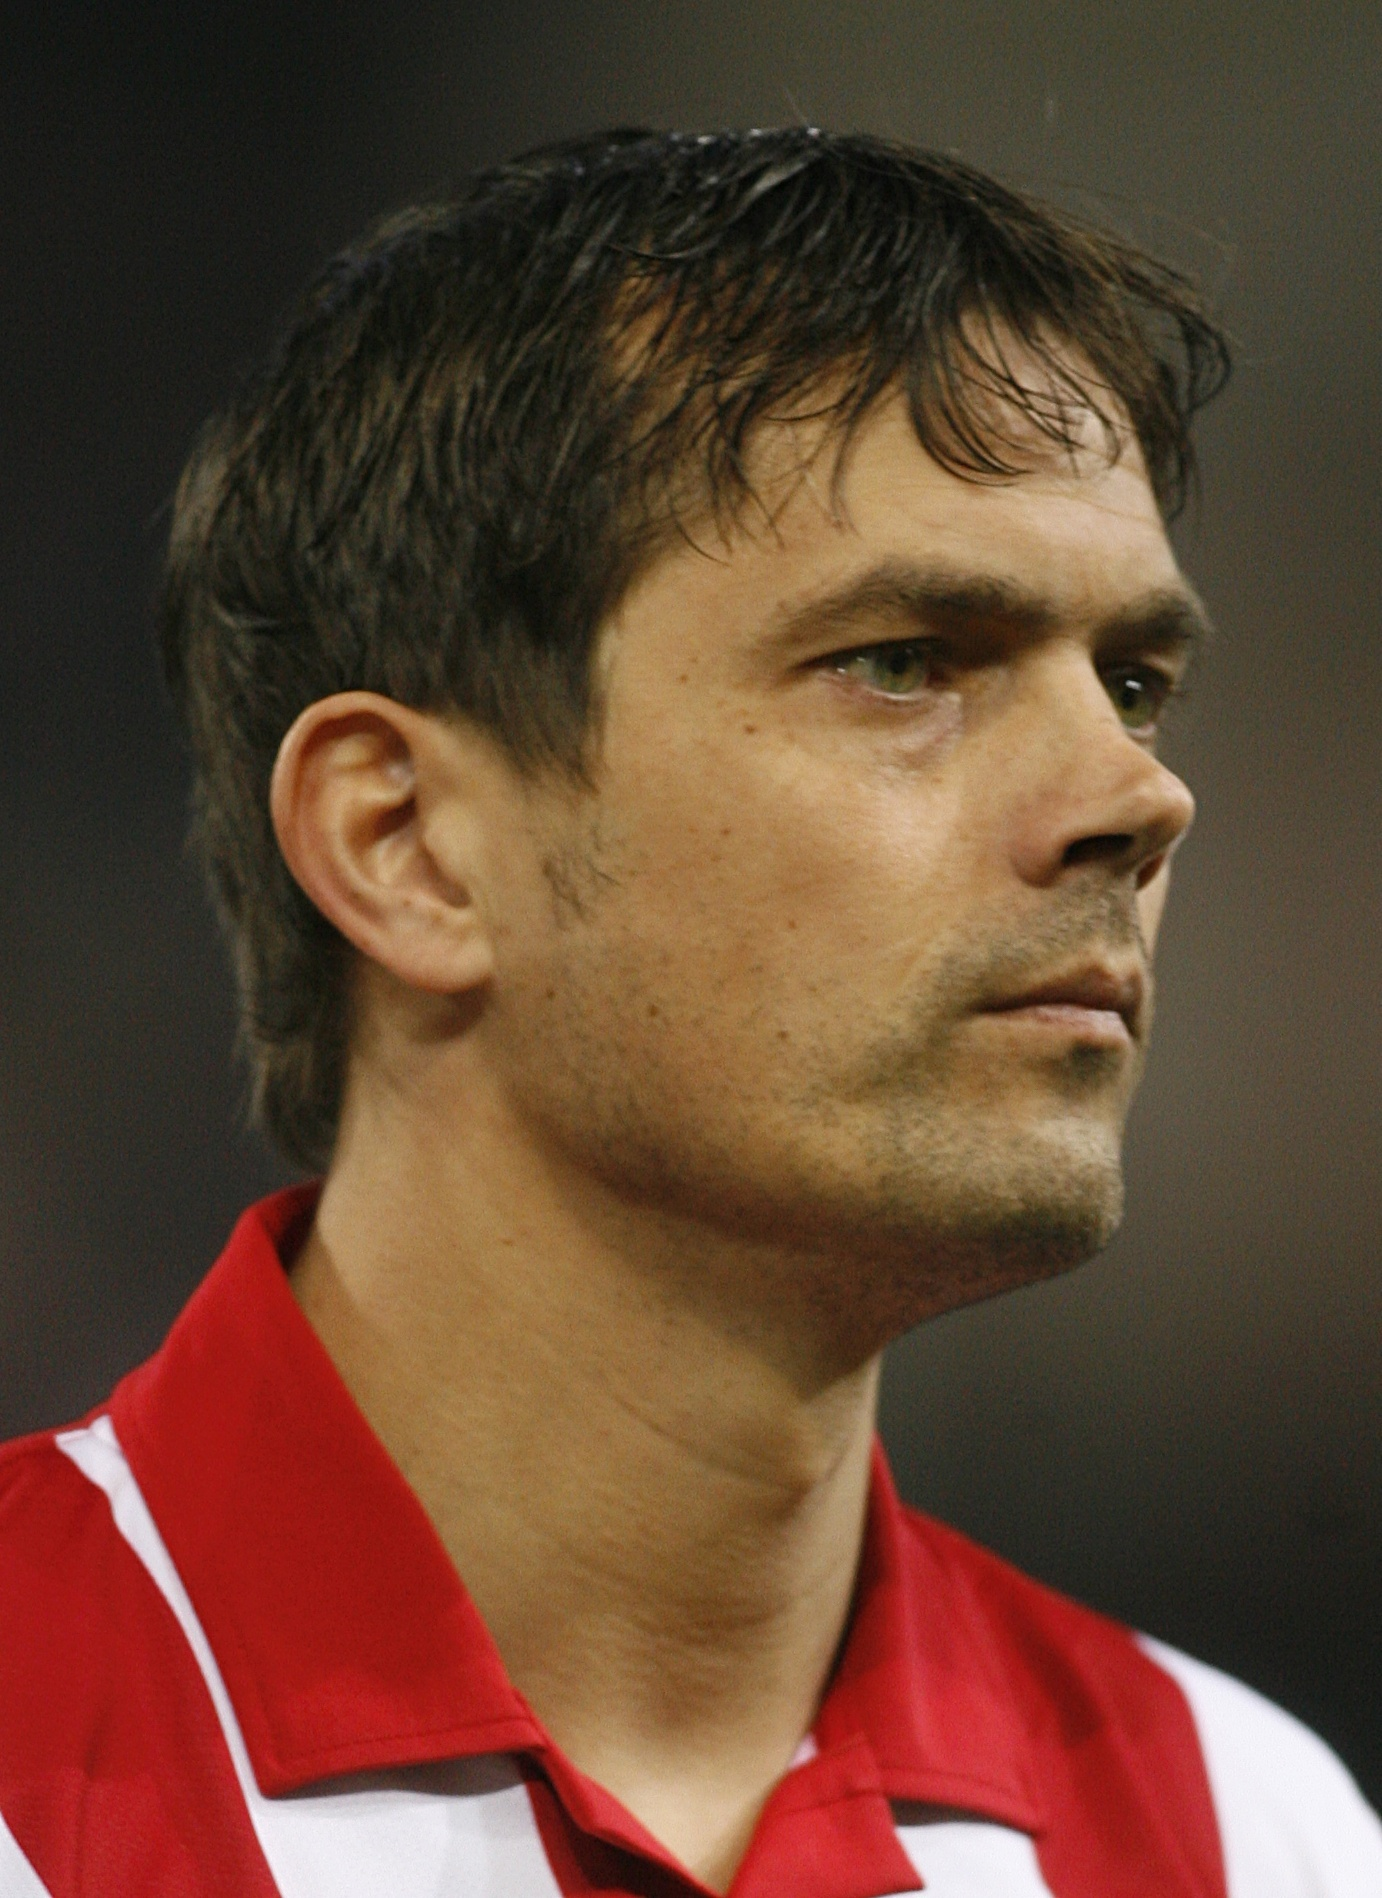 Cocu made his breakthrough at PSV Eindhoven